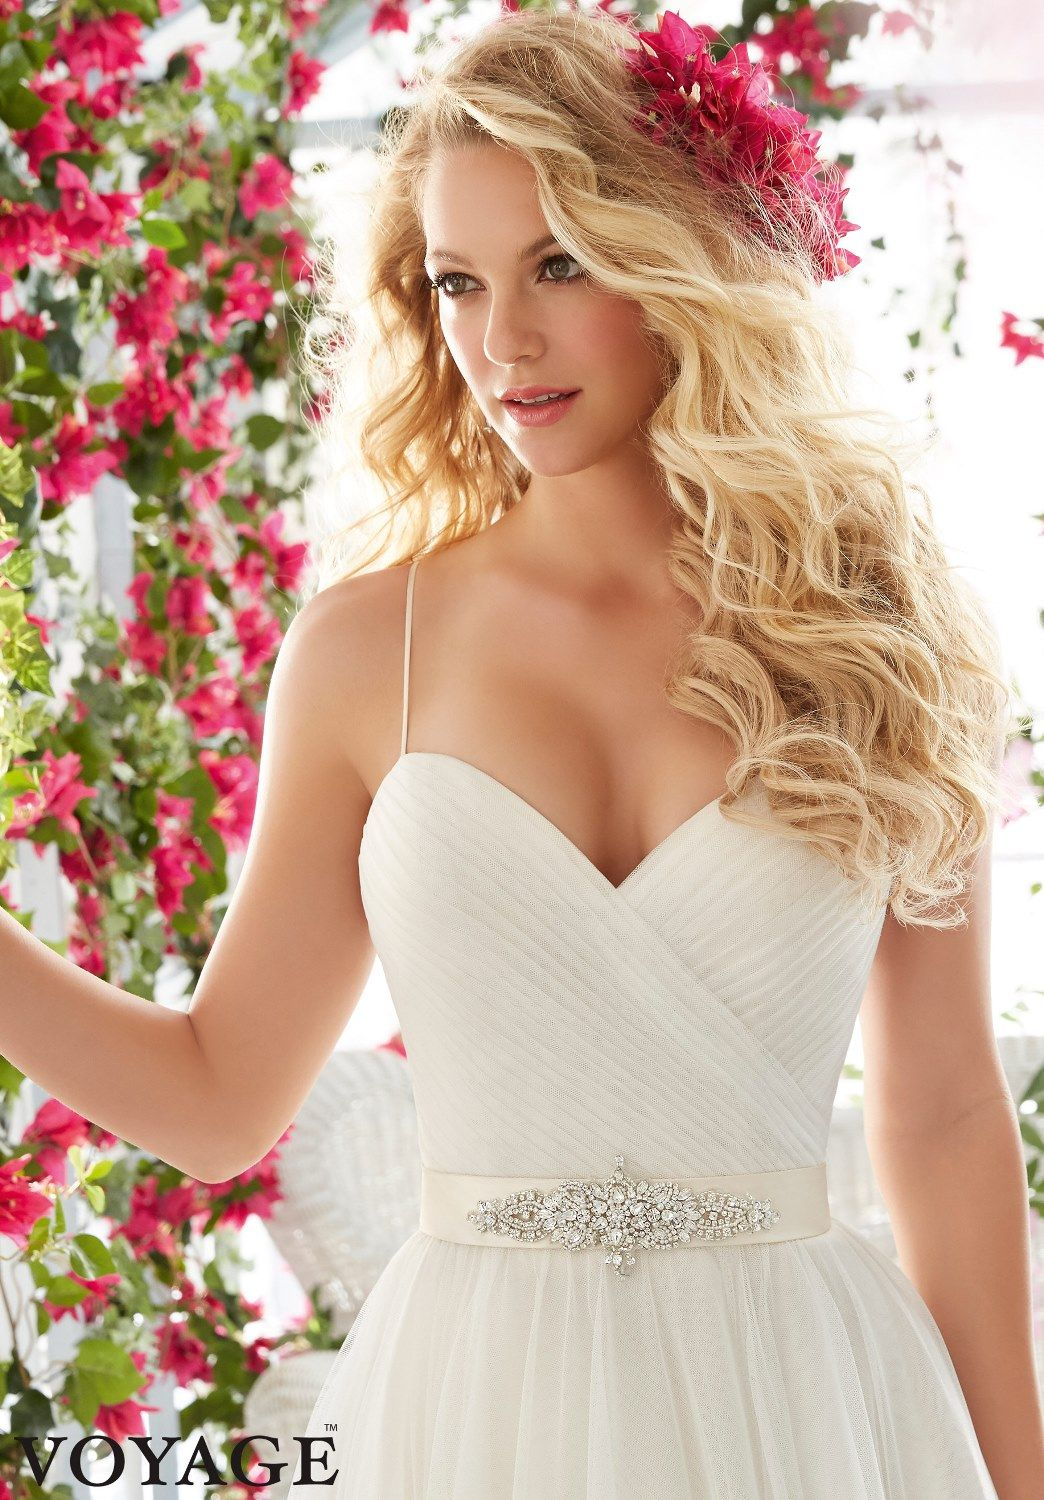 Gold white wedding dress  Accessorize your Look with Fresh Flowers  Bunchesdirect  Wedding